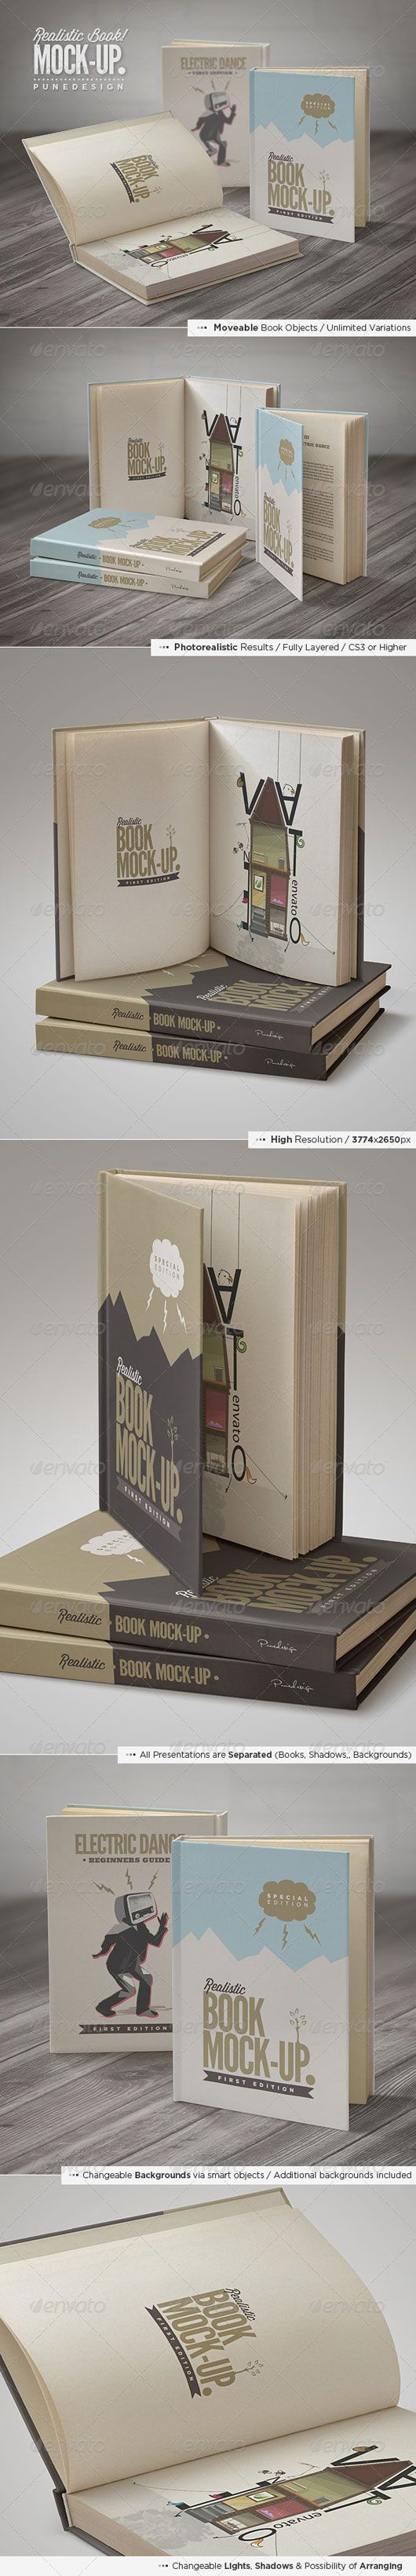 Presenting Your Book in a Professional Way – 10 Best Book Mockups #mockups #book #template